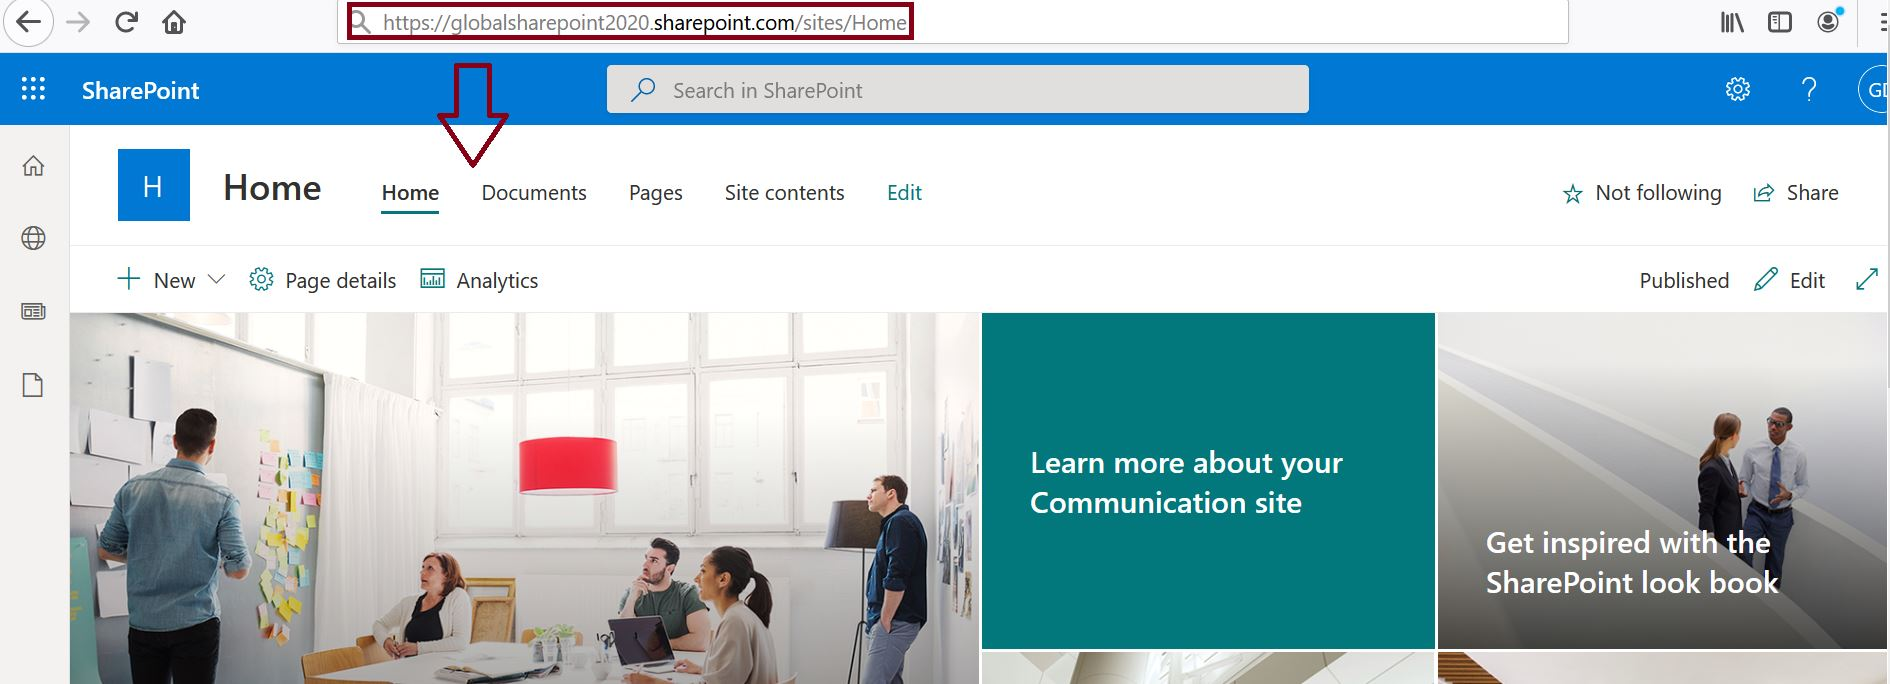 SharePoint Online home site before swapping